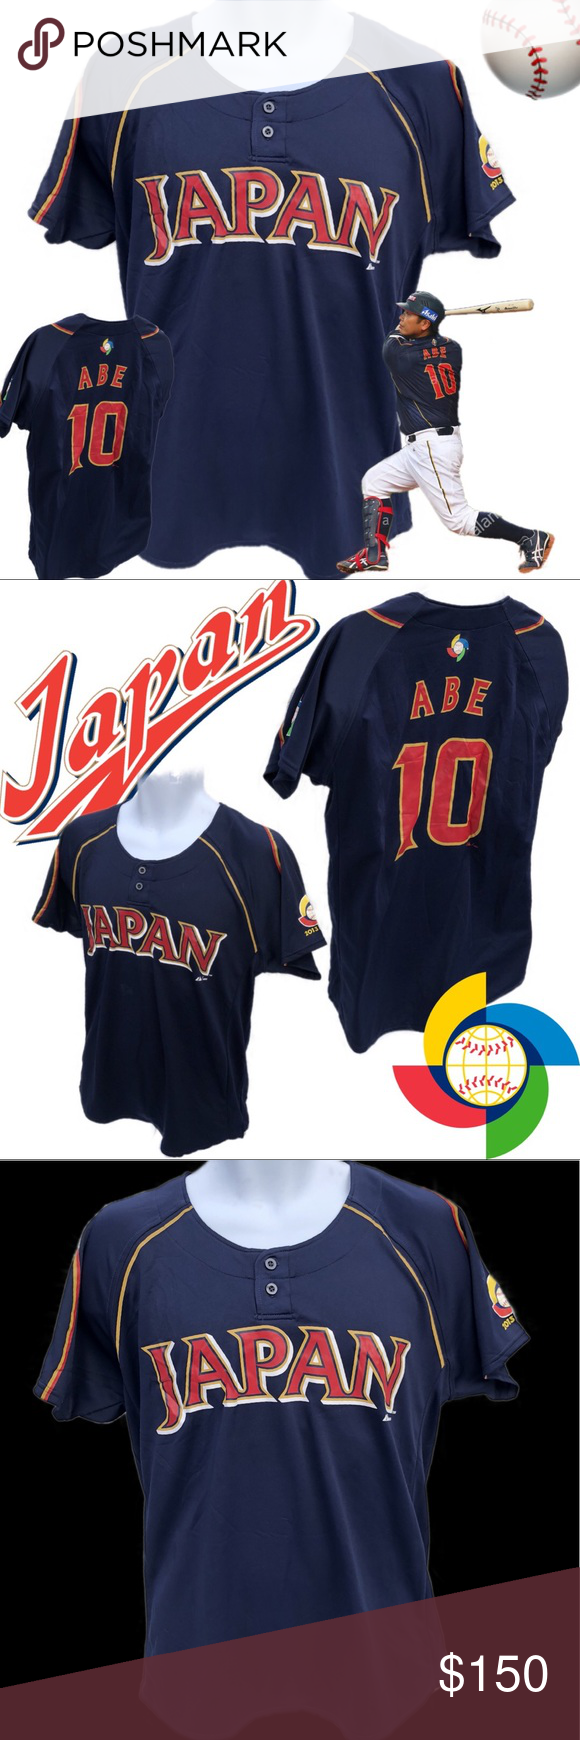 LIMITED TIME New Abe 10 Japan National Team Boutique